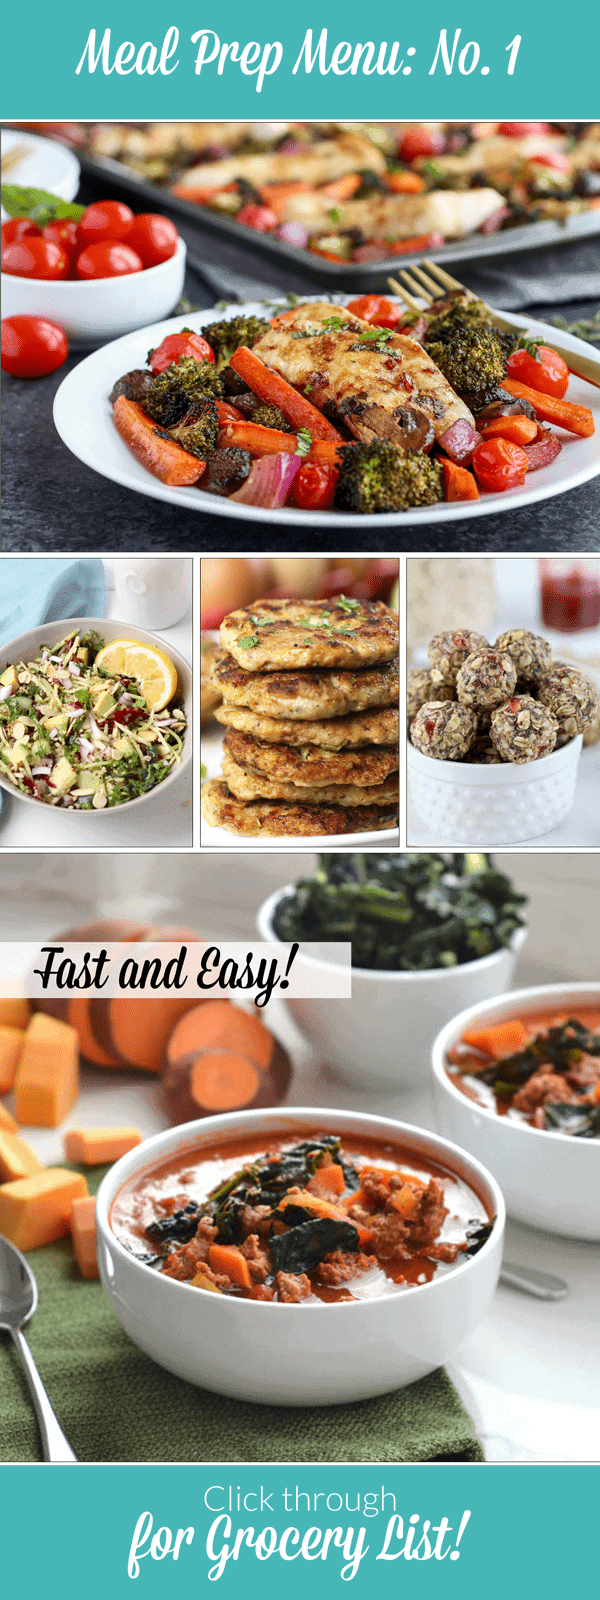 Weekly Meal Prep Menu: No. 1 featuring 5 fast and easy recipes you can make on the weekend. Gluten-free | Dairy-free | Family-friendly The Real Food Dietitians | https://therealfoodrds.com/weekly-meal-prep-menu-no-1/